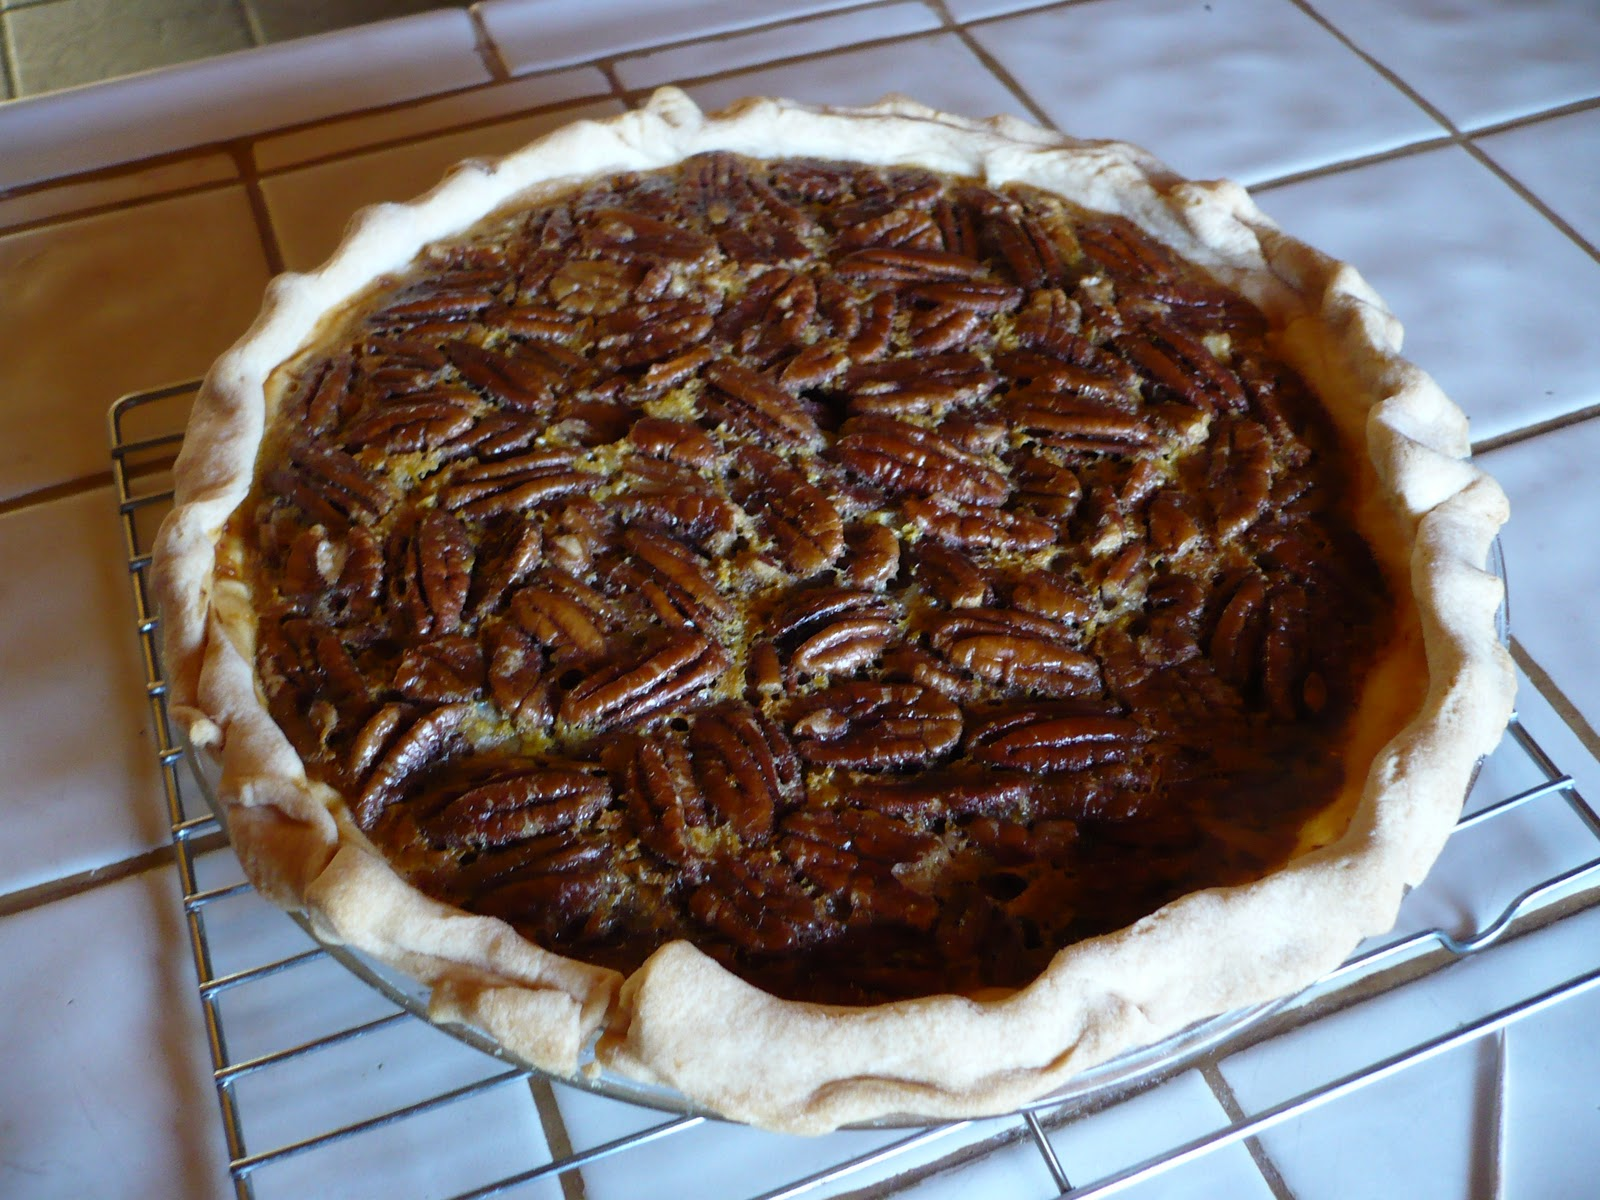 Gilligan's Gourmet Jack Daniels chocolate chip pecan pie.